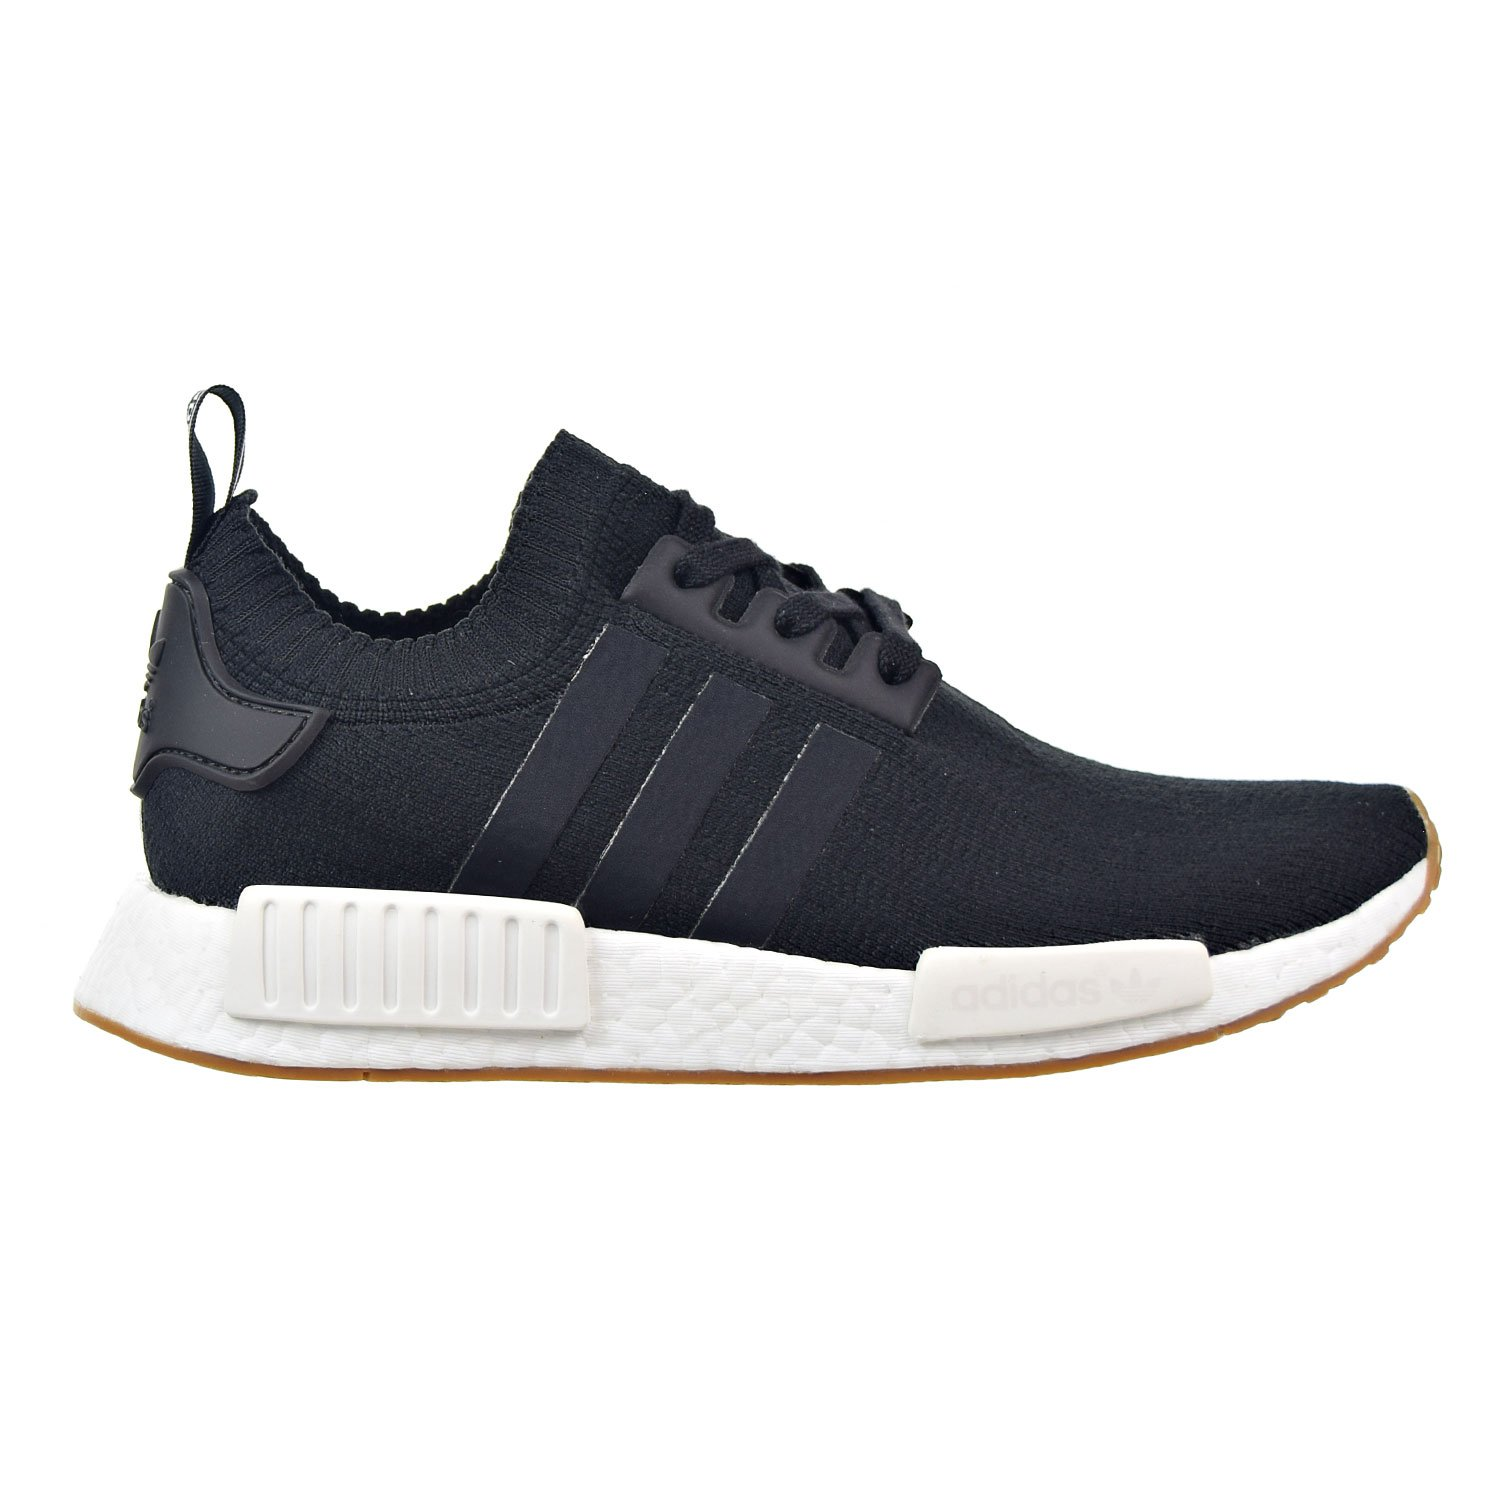 adidas NMD R1 W PK adidas 363, Baskets R1 Mixte Mixte Adulte Black/Gum/Running White 1180050 - therethere.space